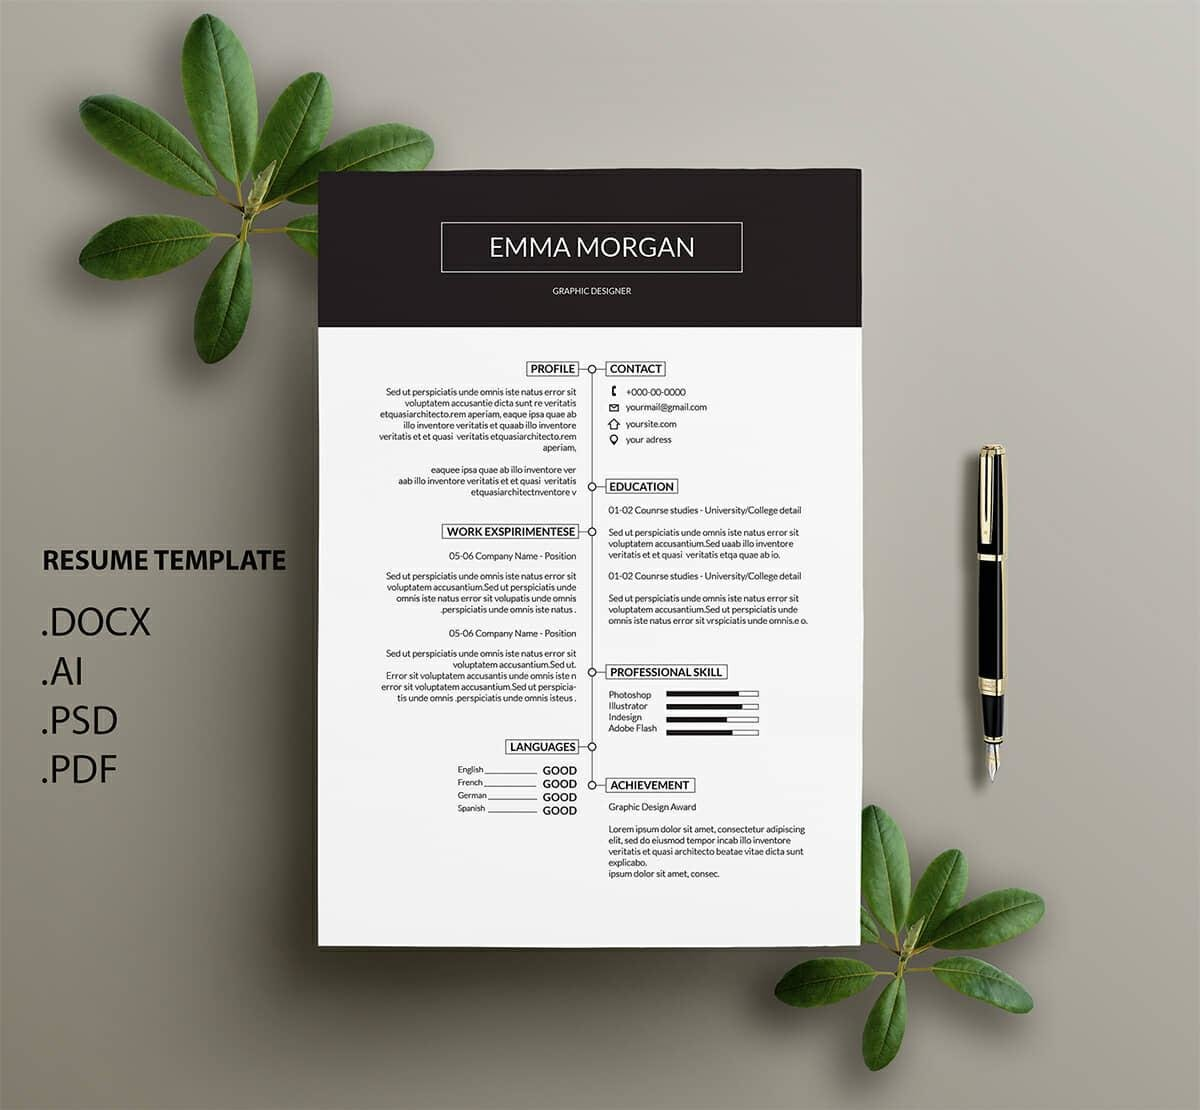 clean resume design with timeline